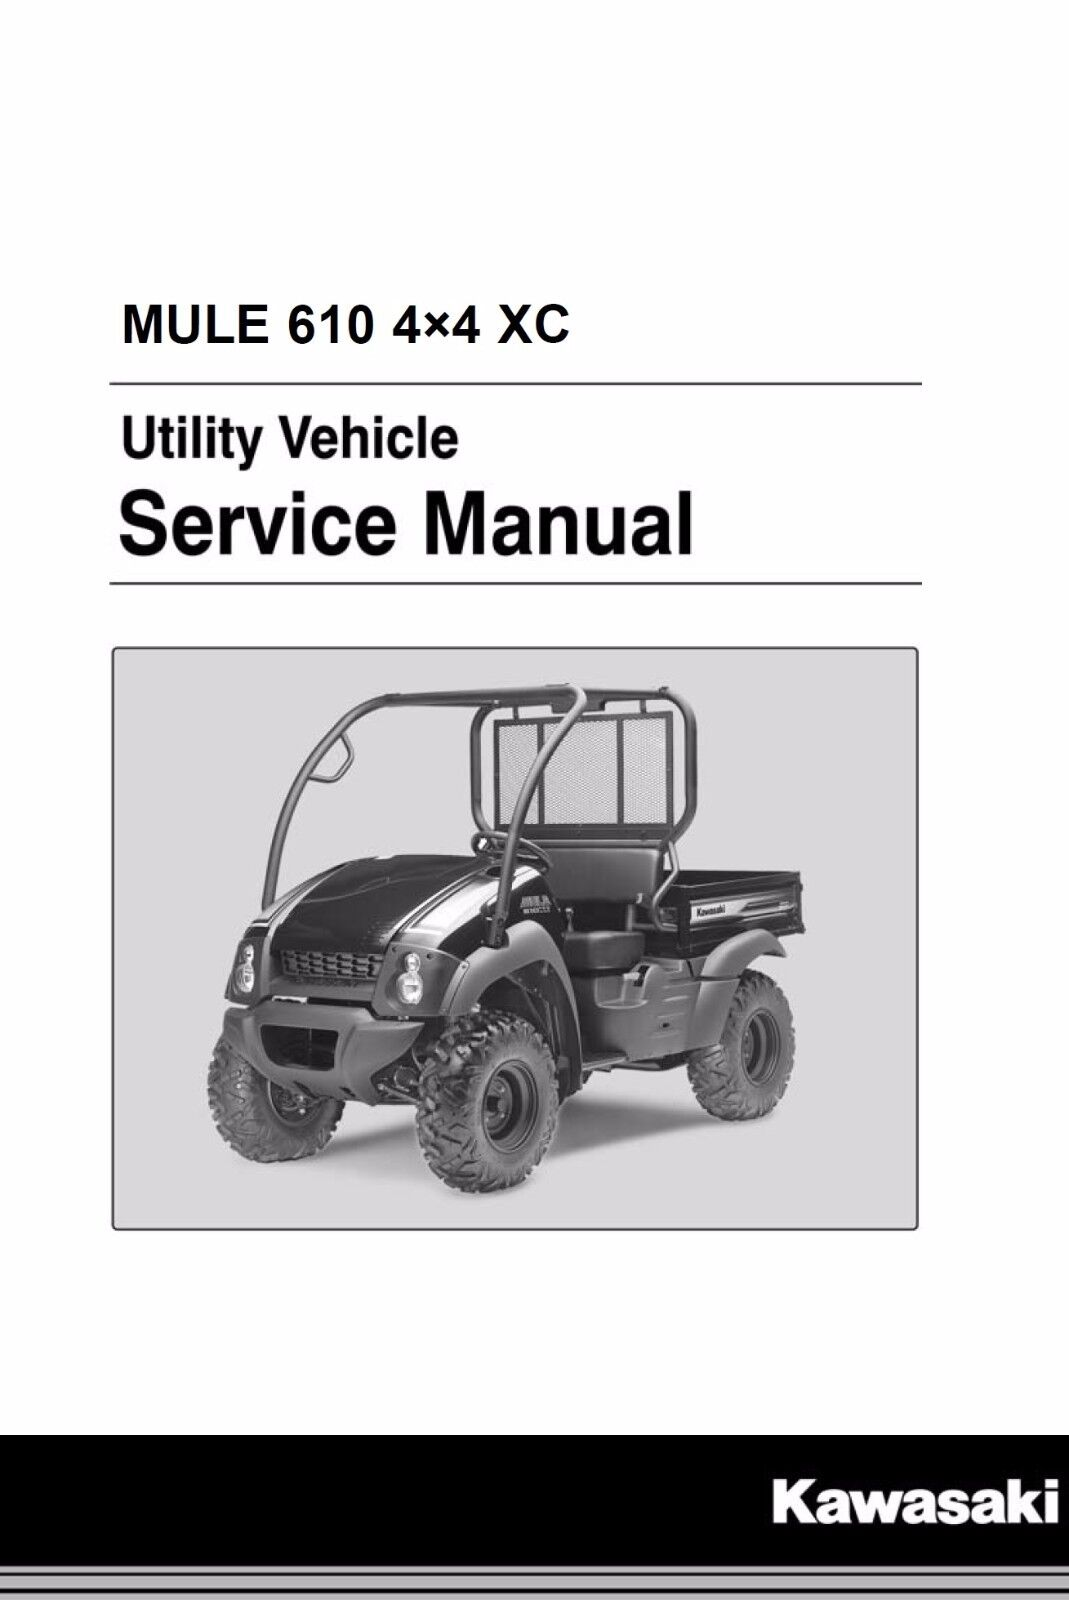 Kawasaki Mule 610 4x4 KAF400 2010 2011 2012 2013 2014 2015 2016 service  manual 1 of 3Only 1 available See More